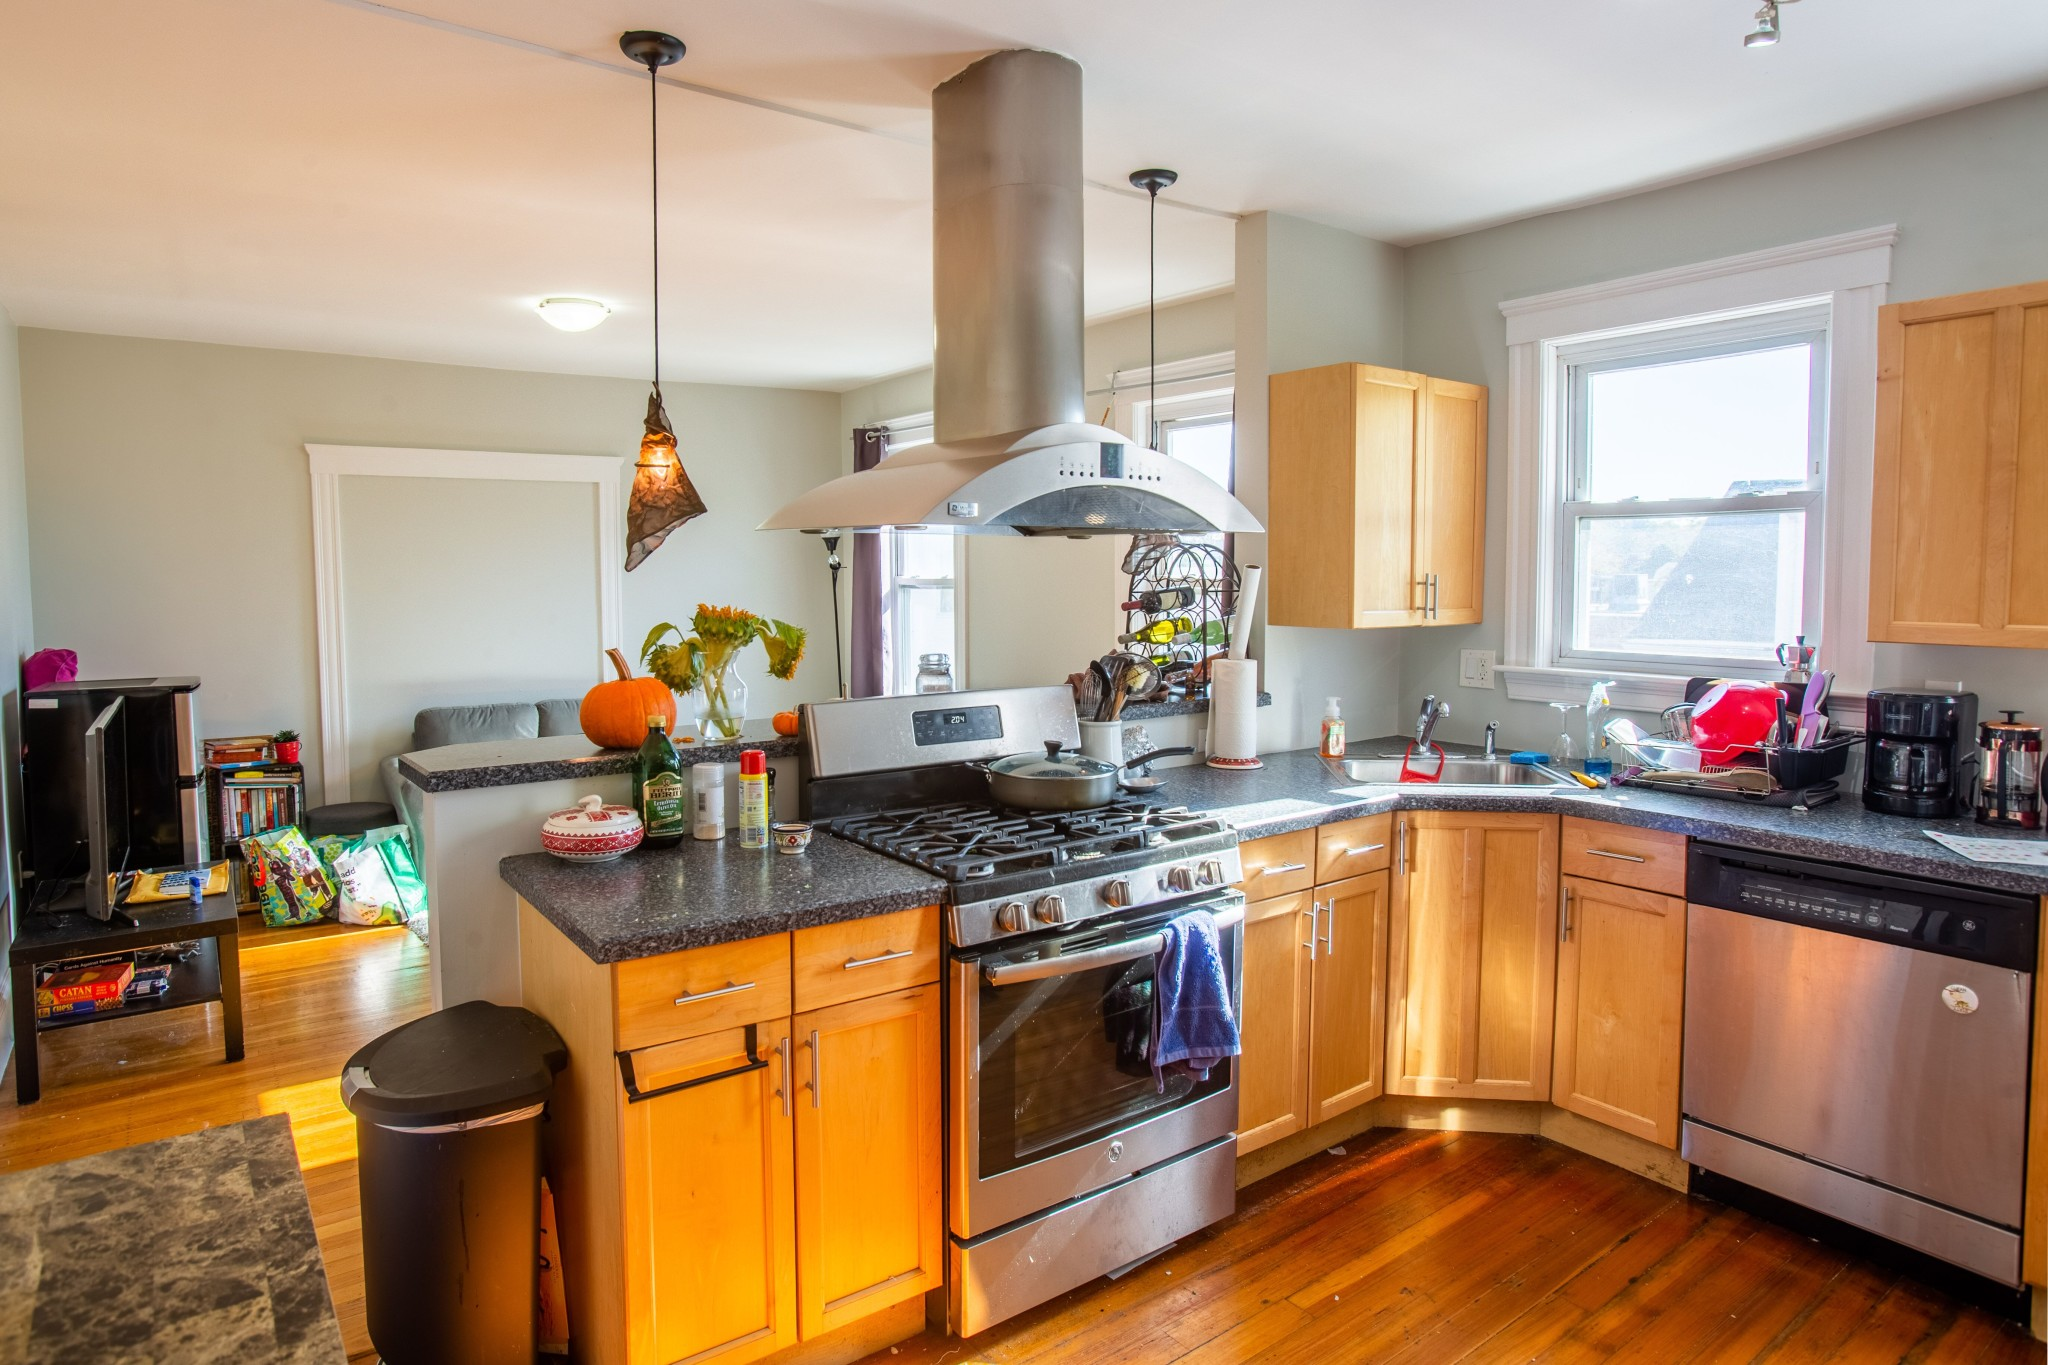 4 Beds, 1 Bath apartment in Somerville for $3,850